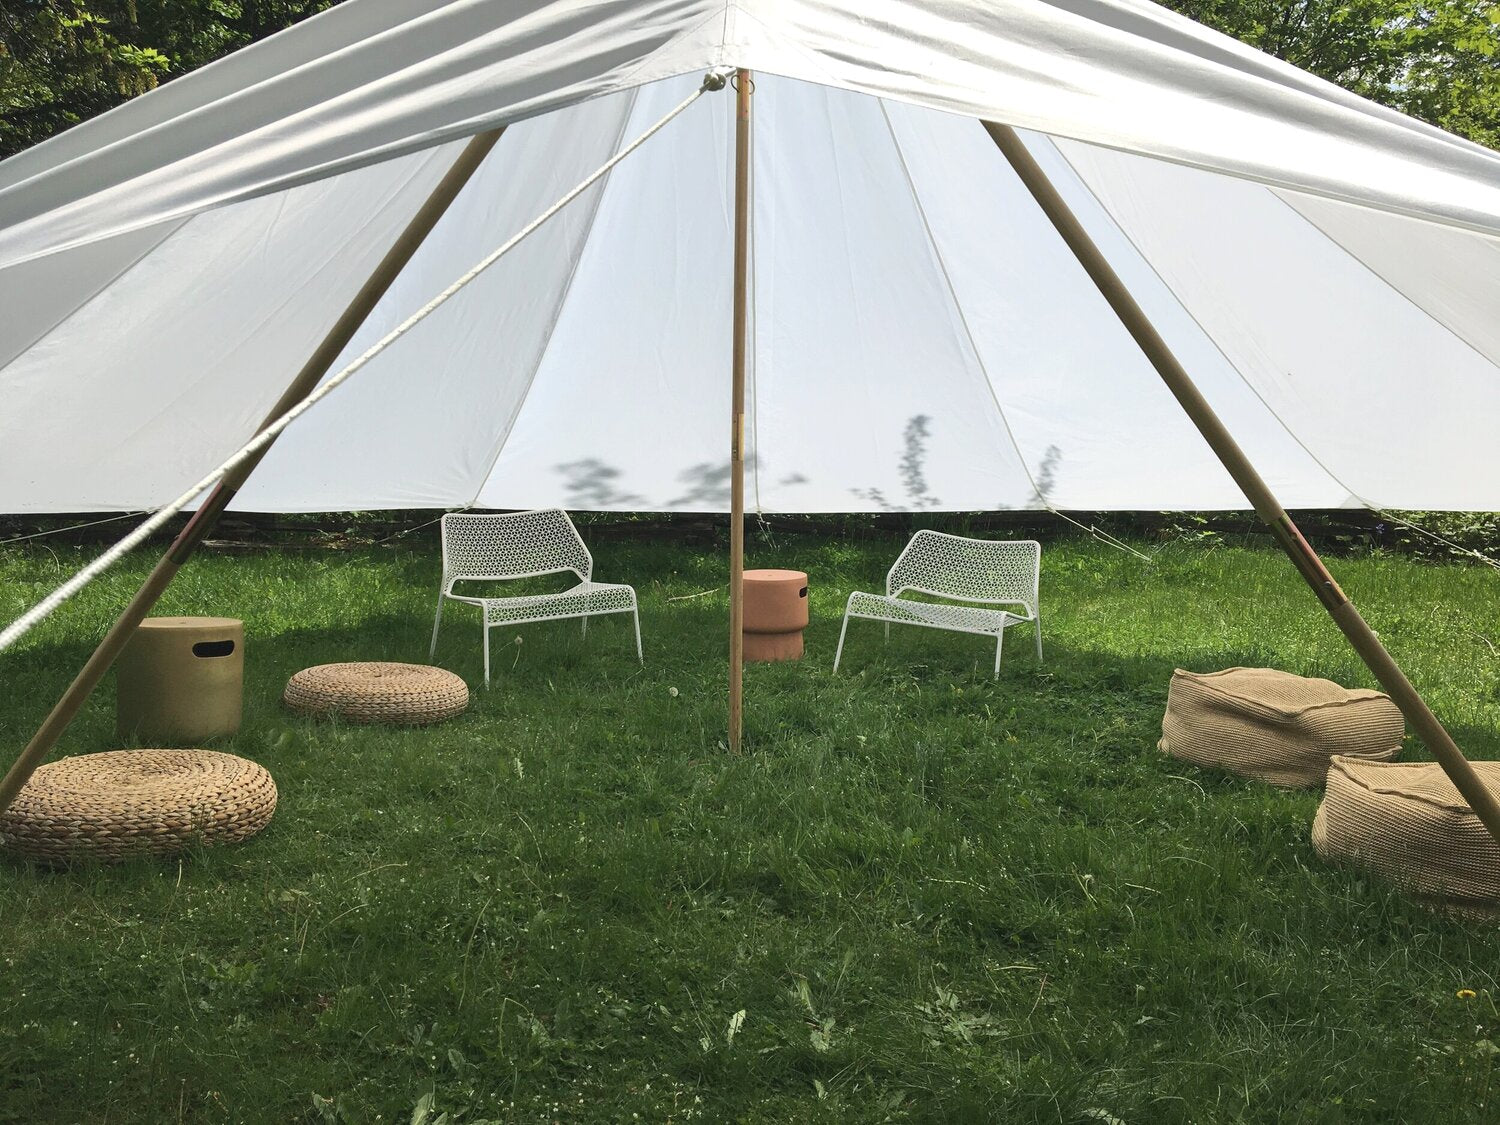 A canvas shade fly is set up over a green expanse of lawn with a variety of seating options around in order for people to keep cool in the shade.